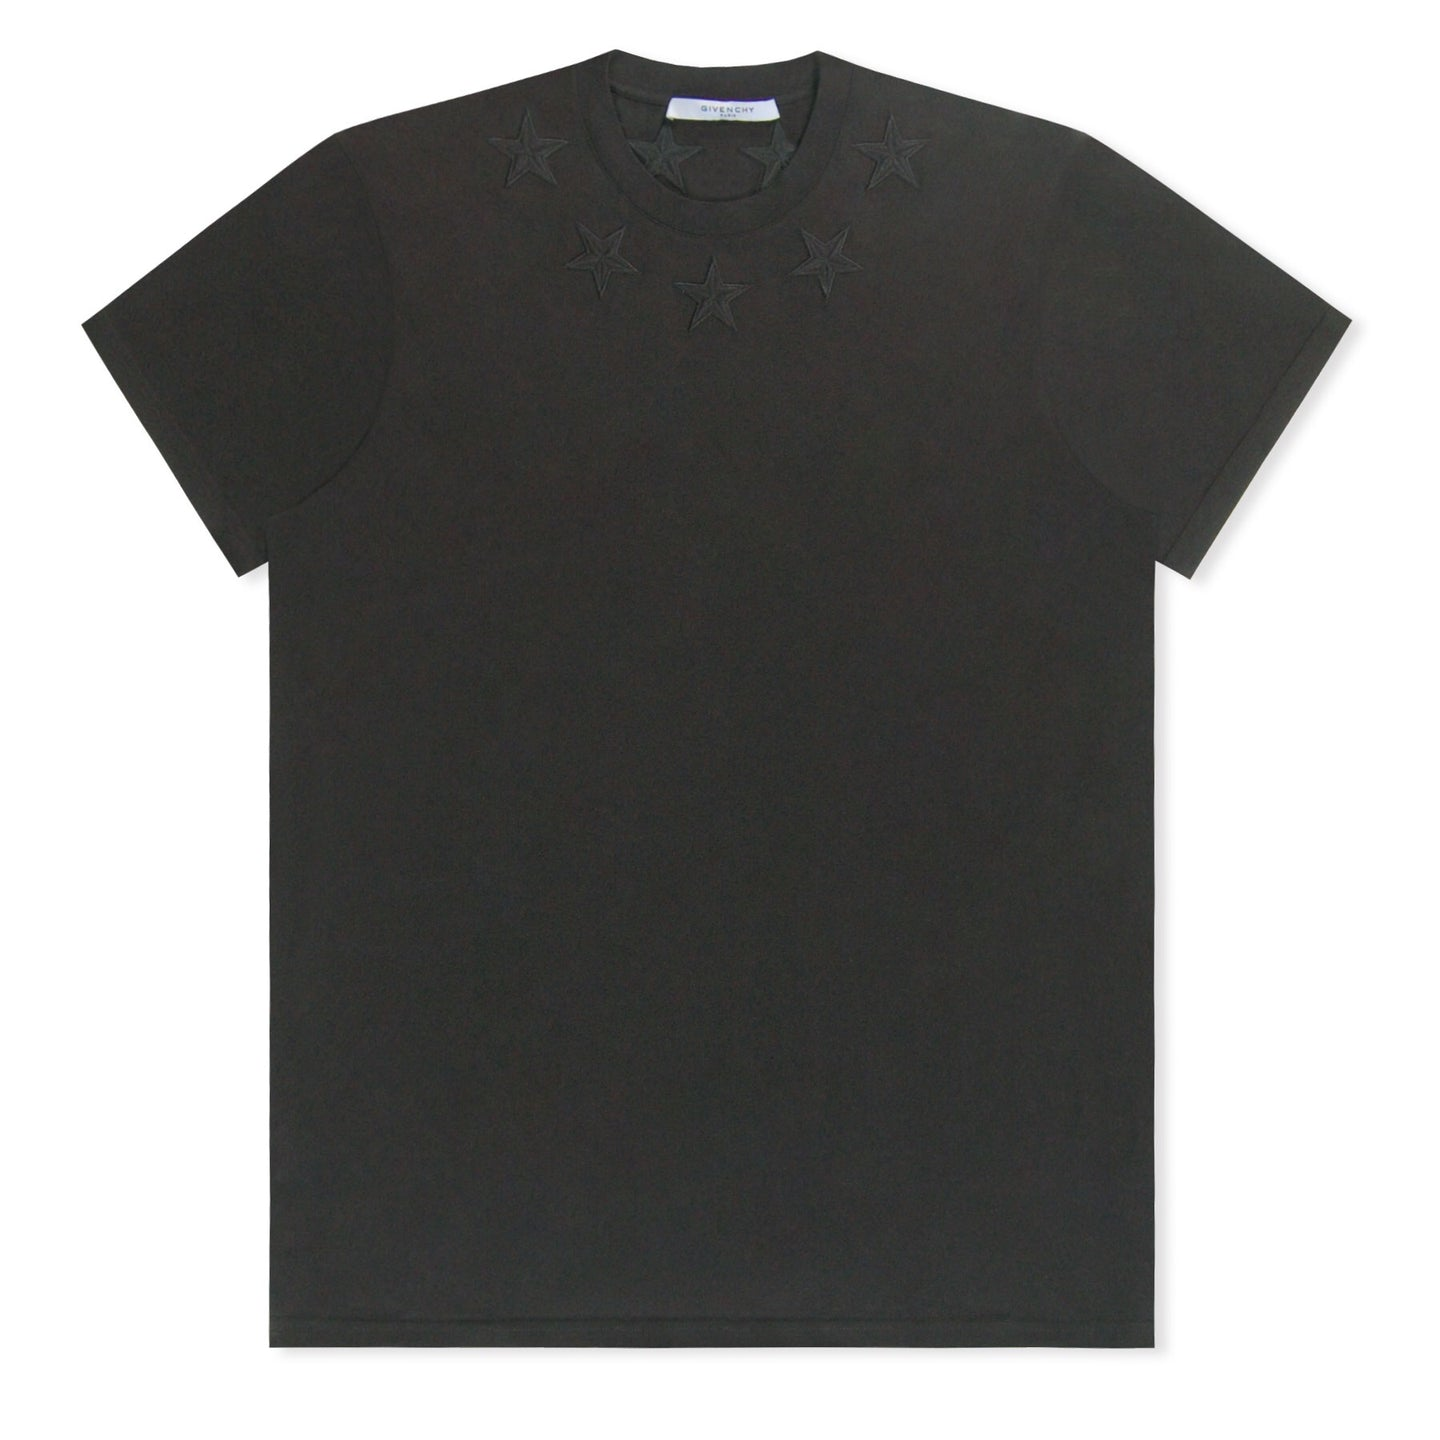 MENS Givenchy Embroidered Star T-Shirt Black